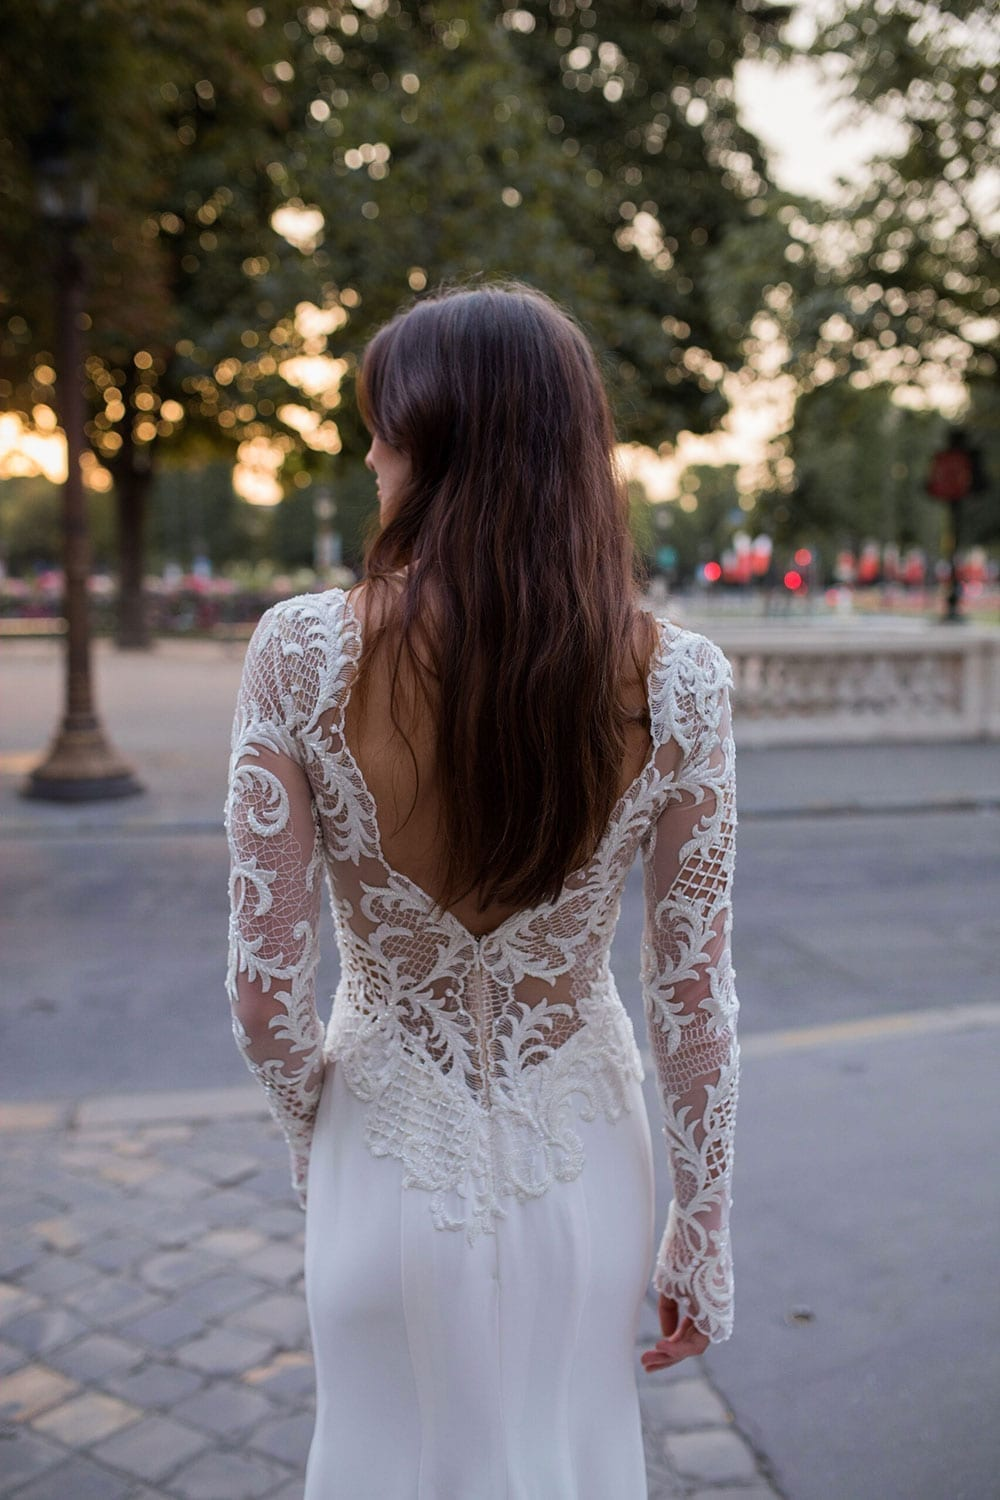 Model wearing Vinka Design Katrina Wedding Dress, a Stunning wedding dress sculptured with richly beaded lace . V neck gown with long fitted sleeves, a tailored skirt that fits softly over the hipline, and a beautiful train. Worn in Paris plaza - full back detail.